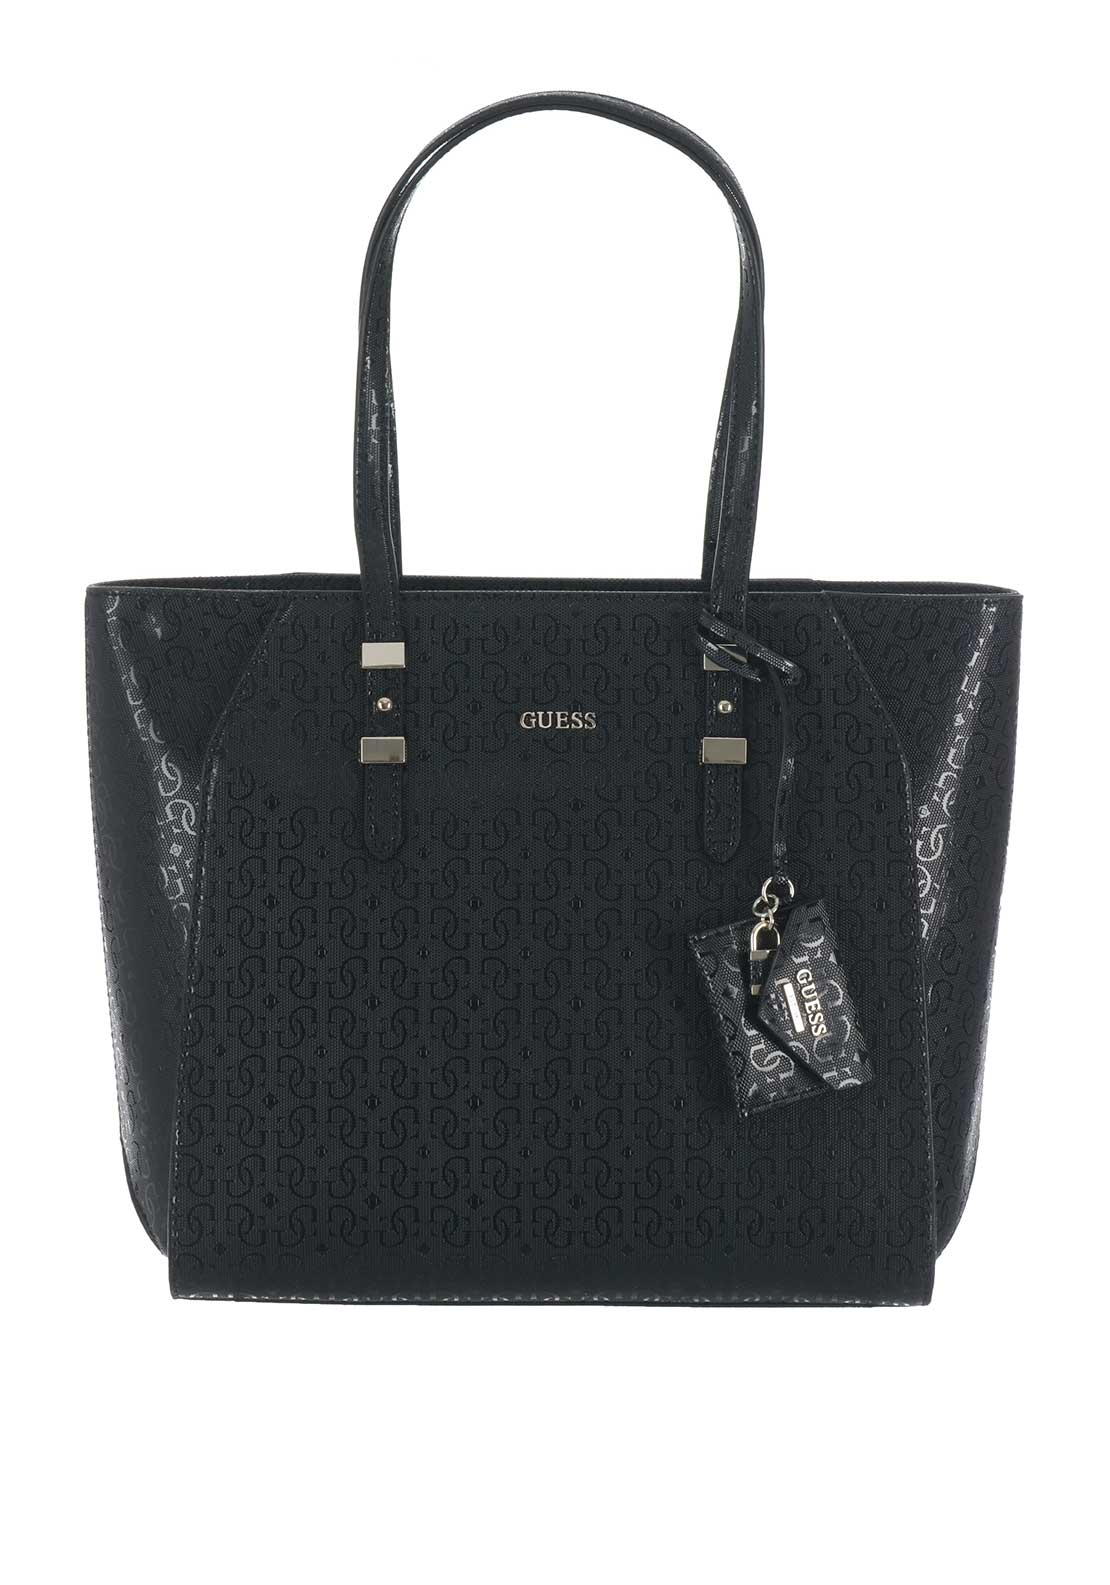 Guess Gia Tote Bag, Black